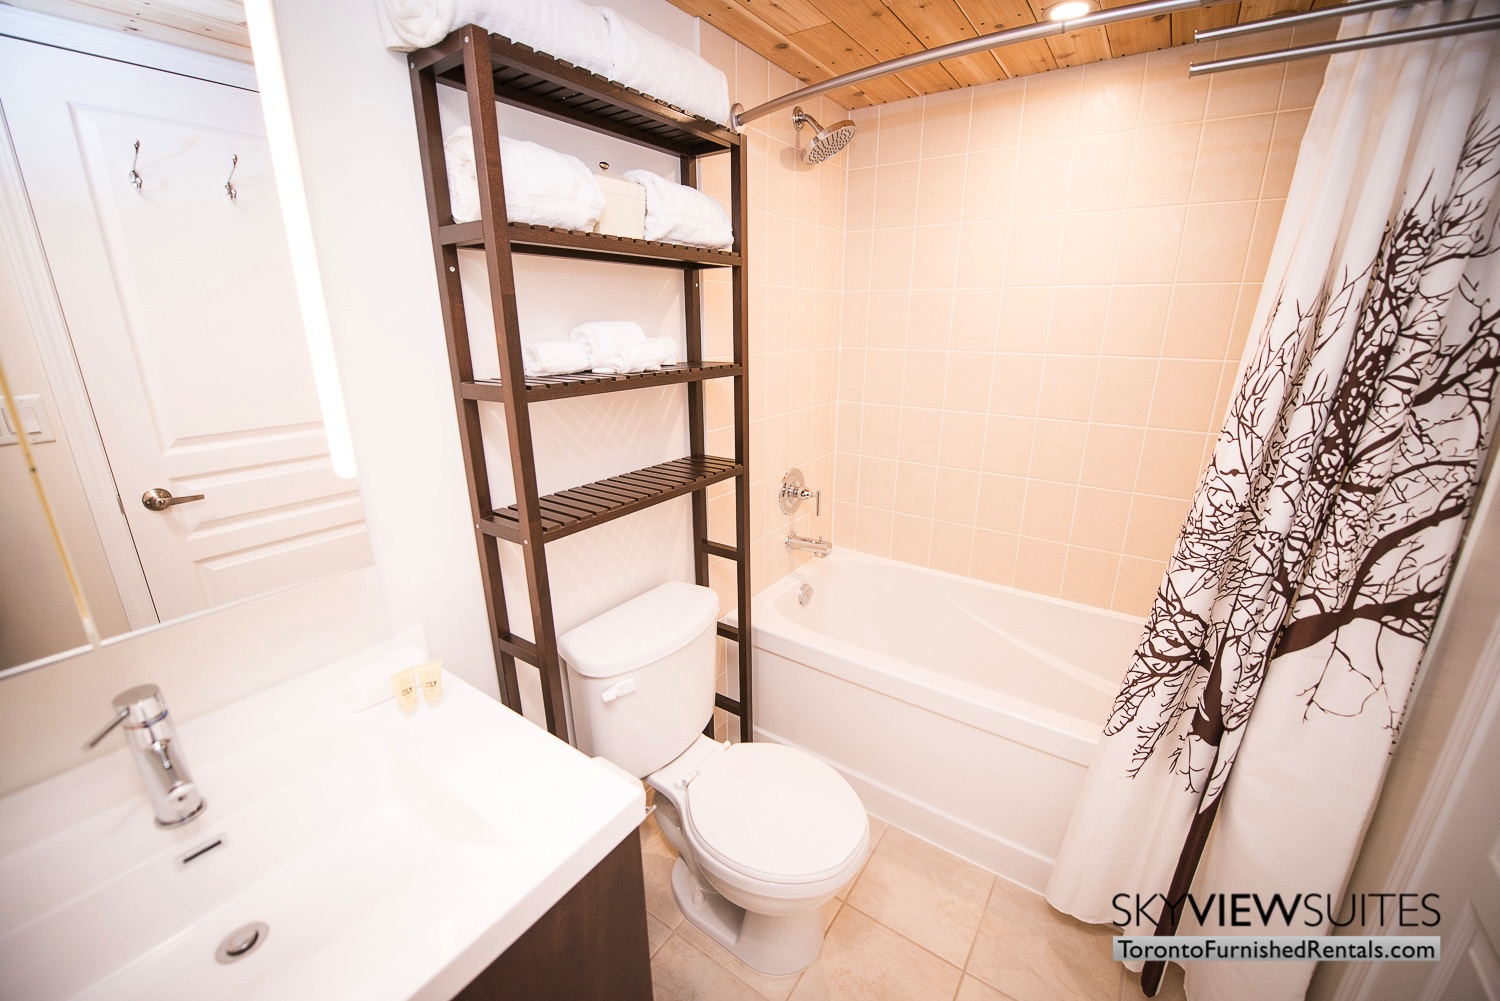 352 Front St. W., Toronto furnished rental bathroom